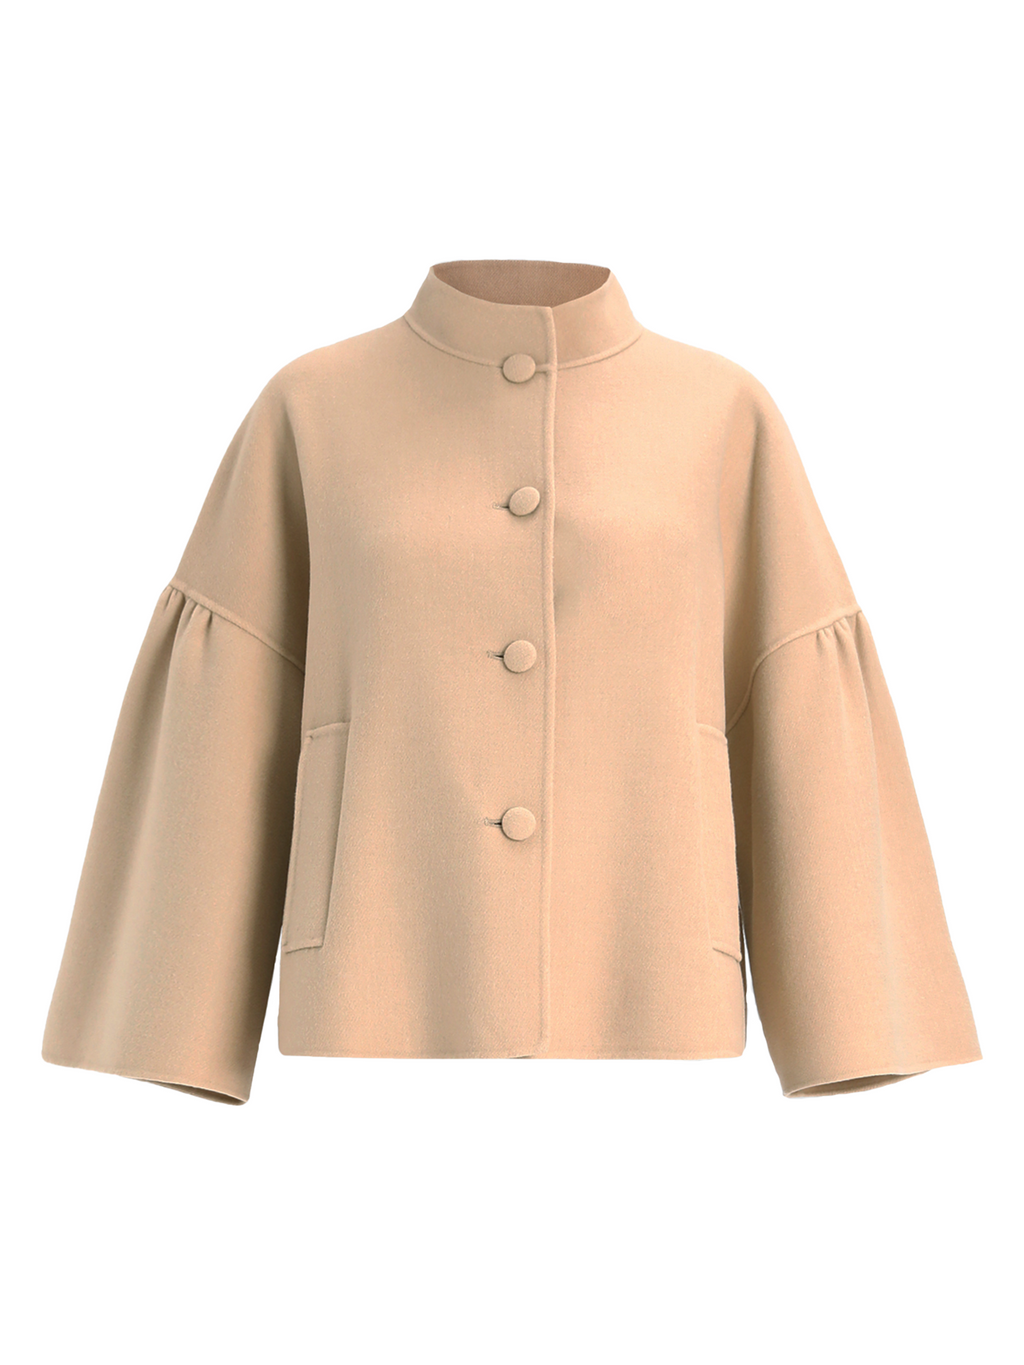 Max Mara Weekend Mandarin Collar Wool Jacket with Bell Sleeves